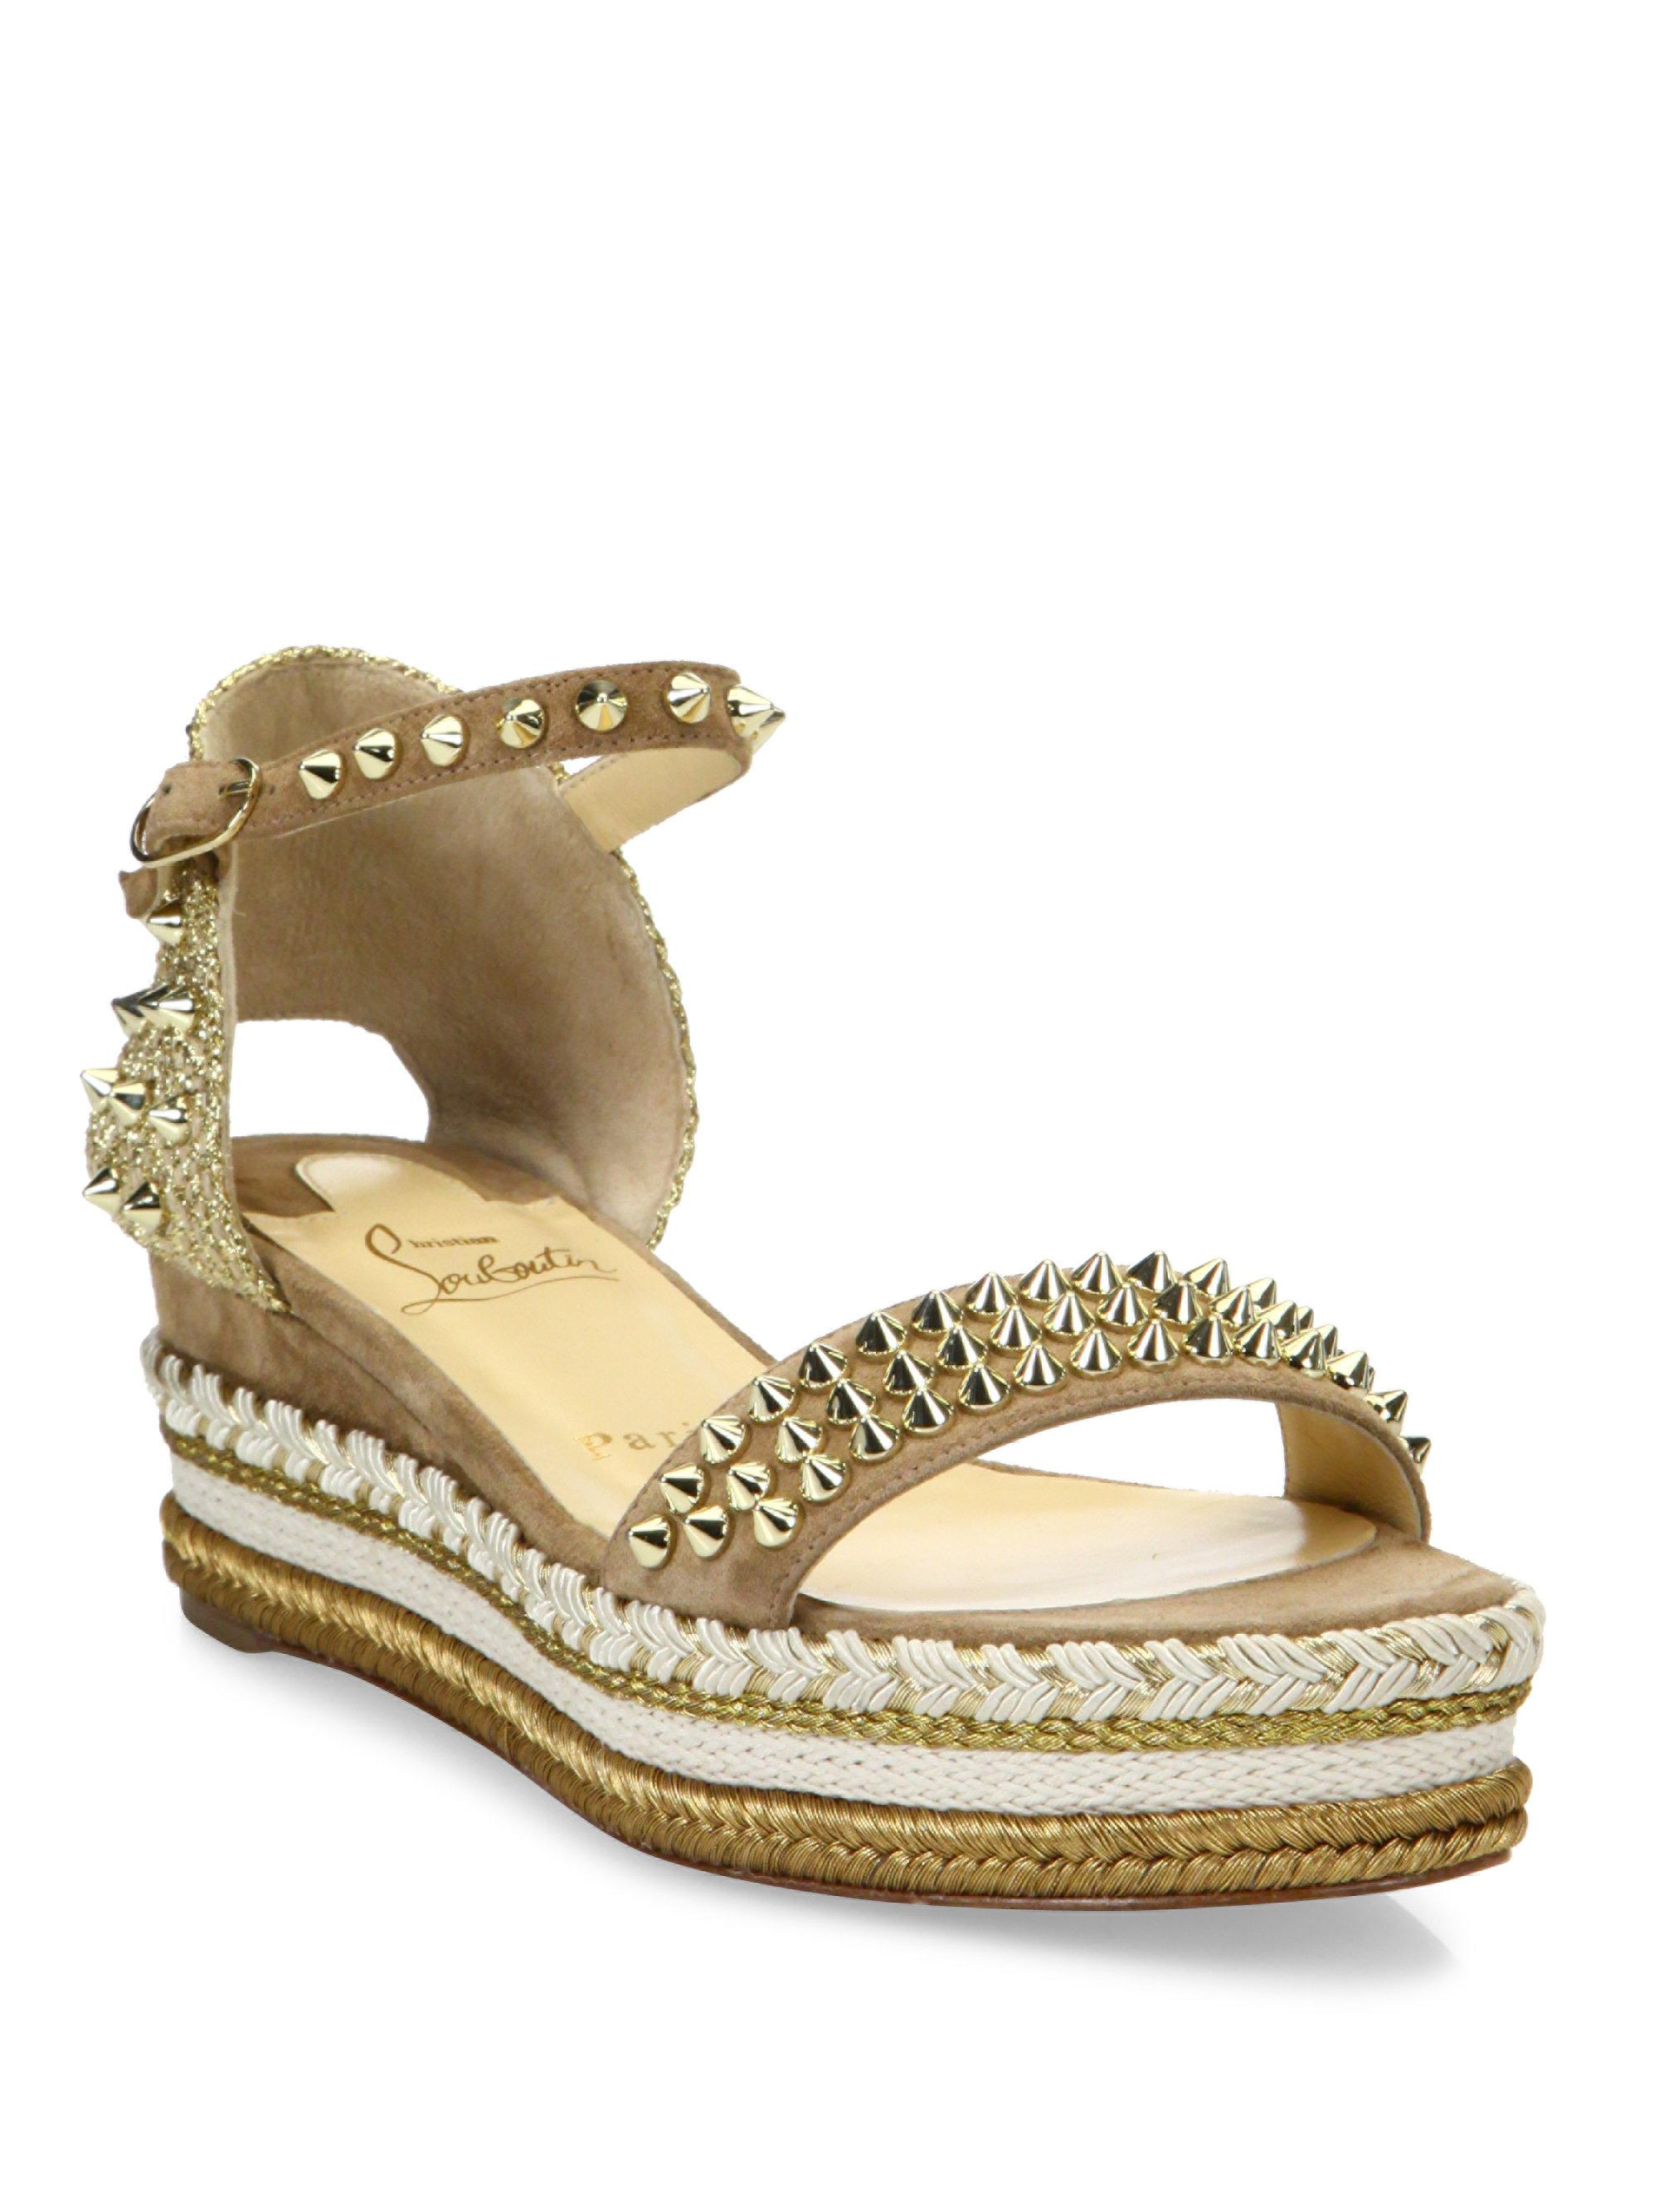 cc766698d28d Gallery. Previously sold at  Saks Fifth Avenue · Women s Christian  Louboutin Spike Women s Jeweled Flat Sandals ...